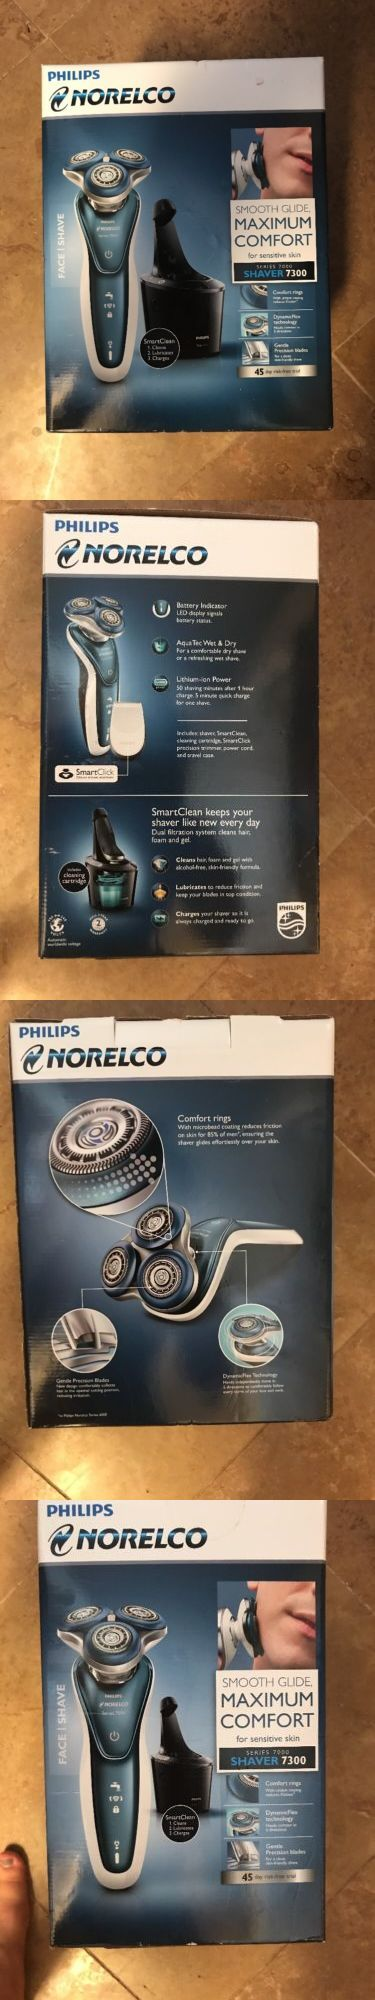 Shaving: Philips Norelco Series 7000 Shaver 7300 Maximum Comfort For Sensitive Skin S7370 -> BUY IT NOW ONLY: $99.99 on eBay!